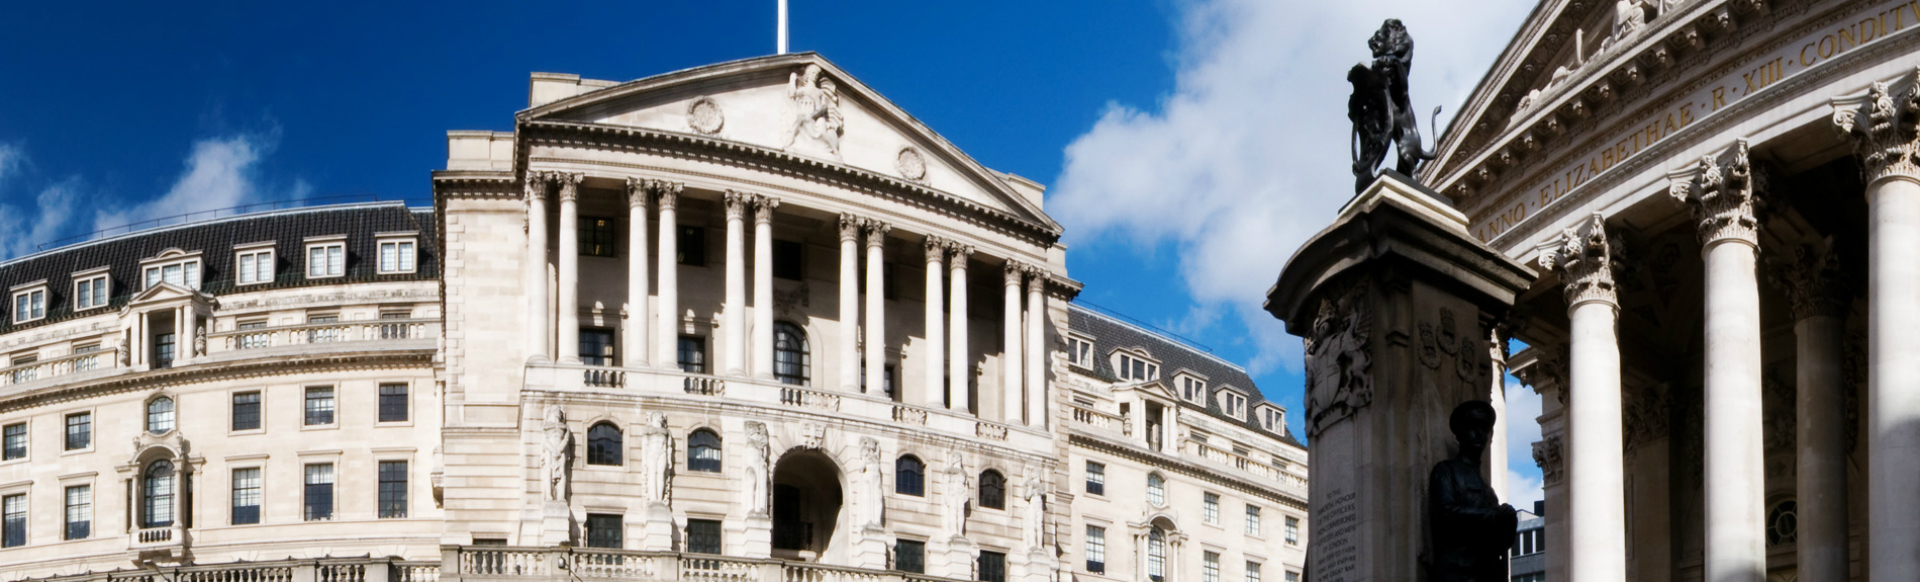 Opening a bank account - business london